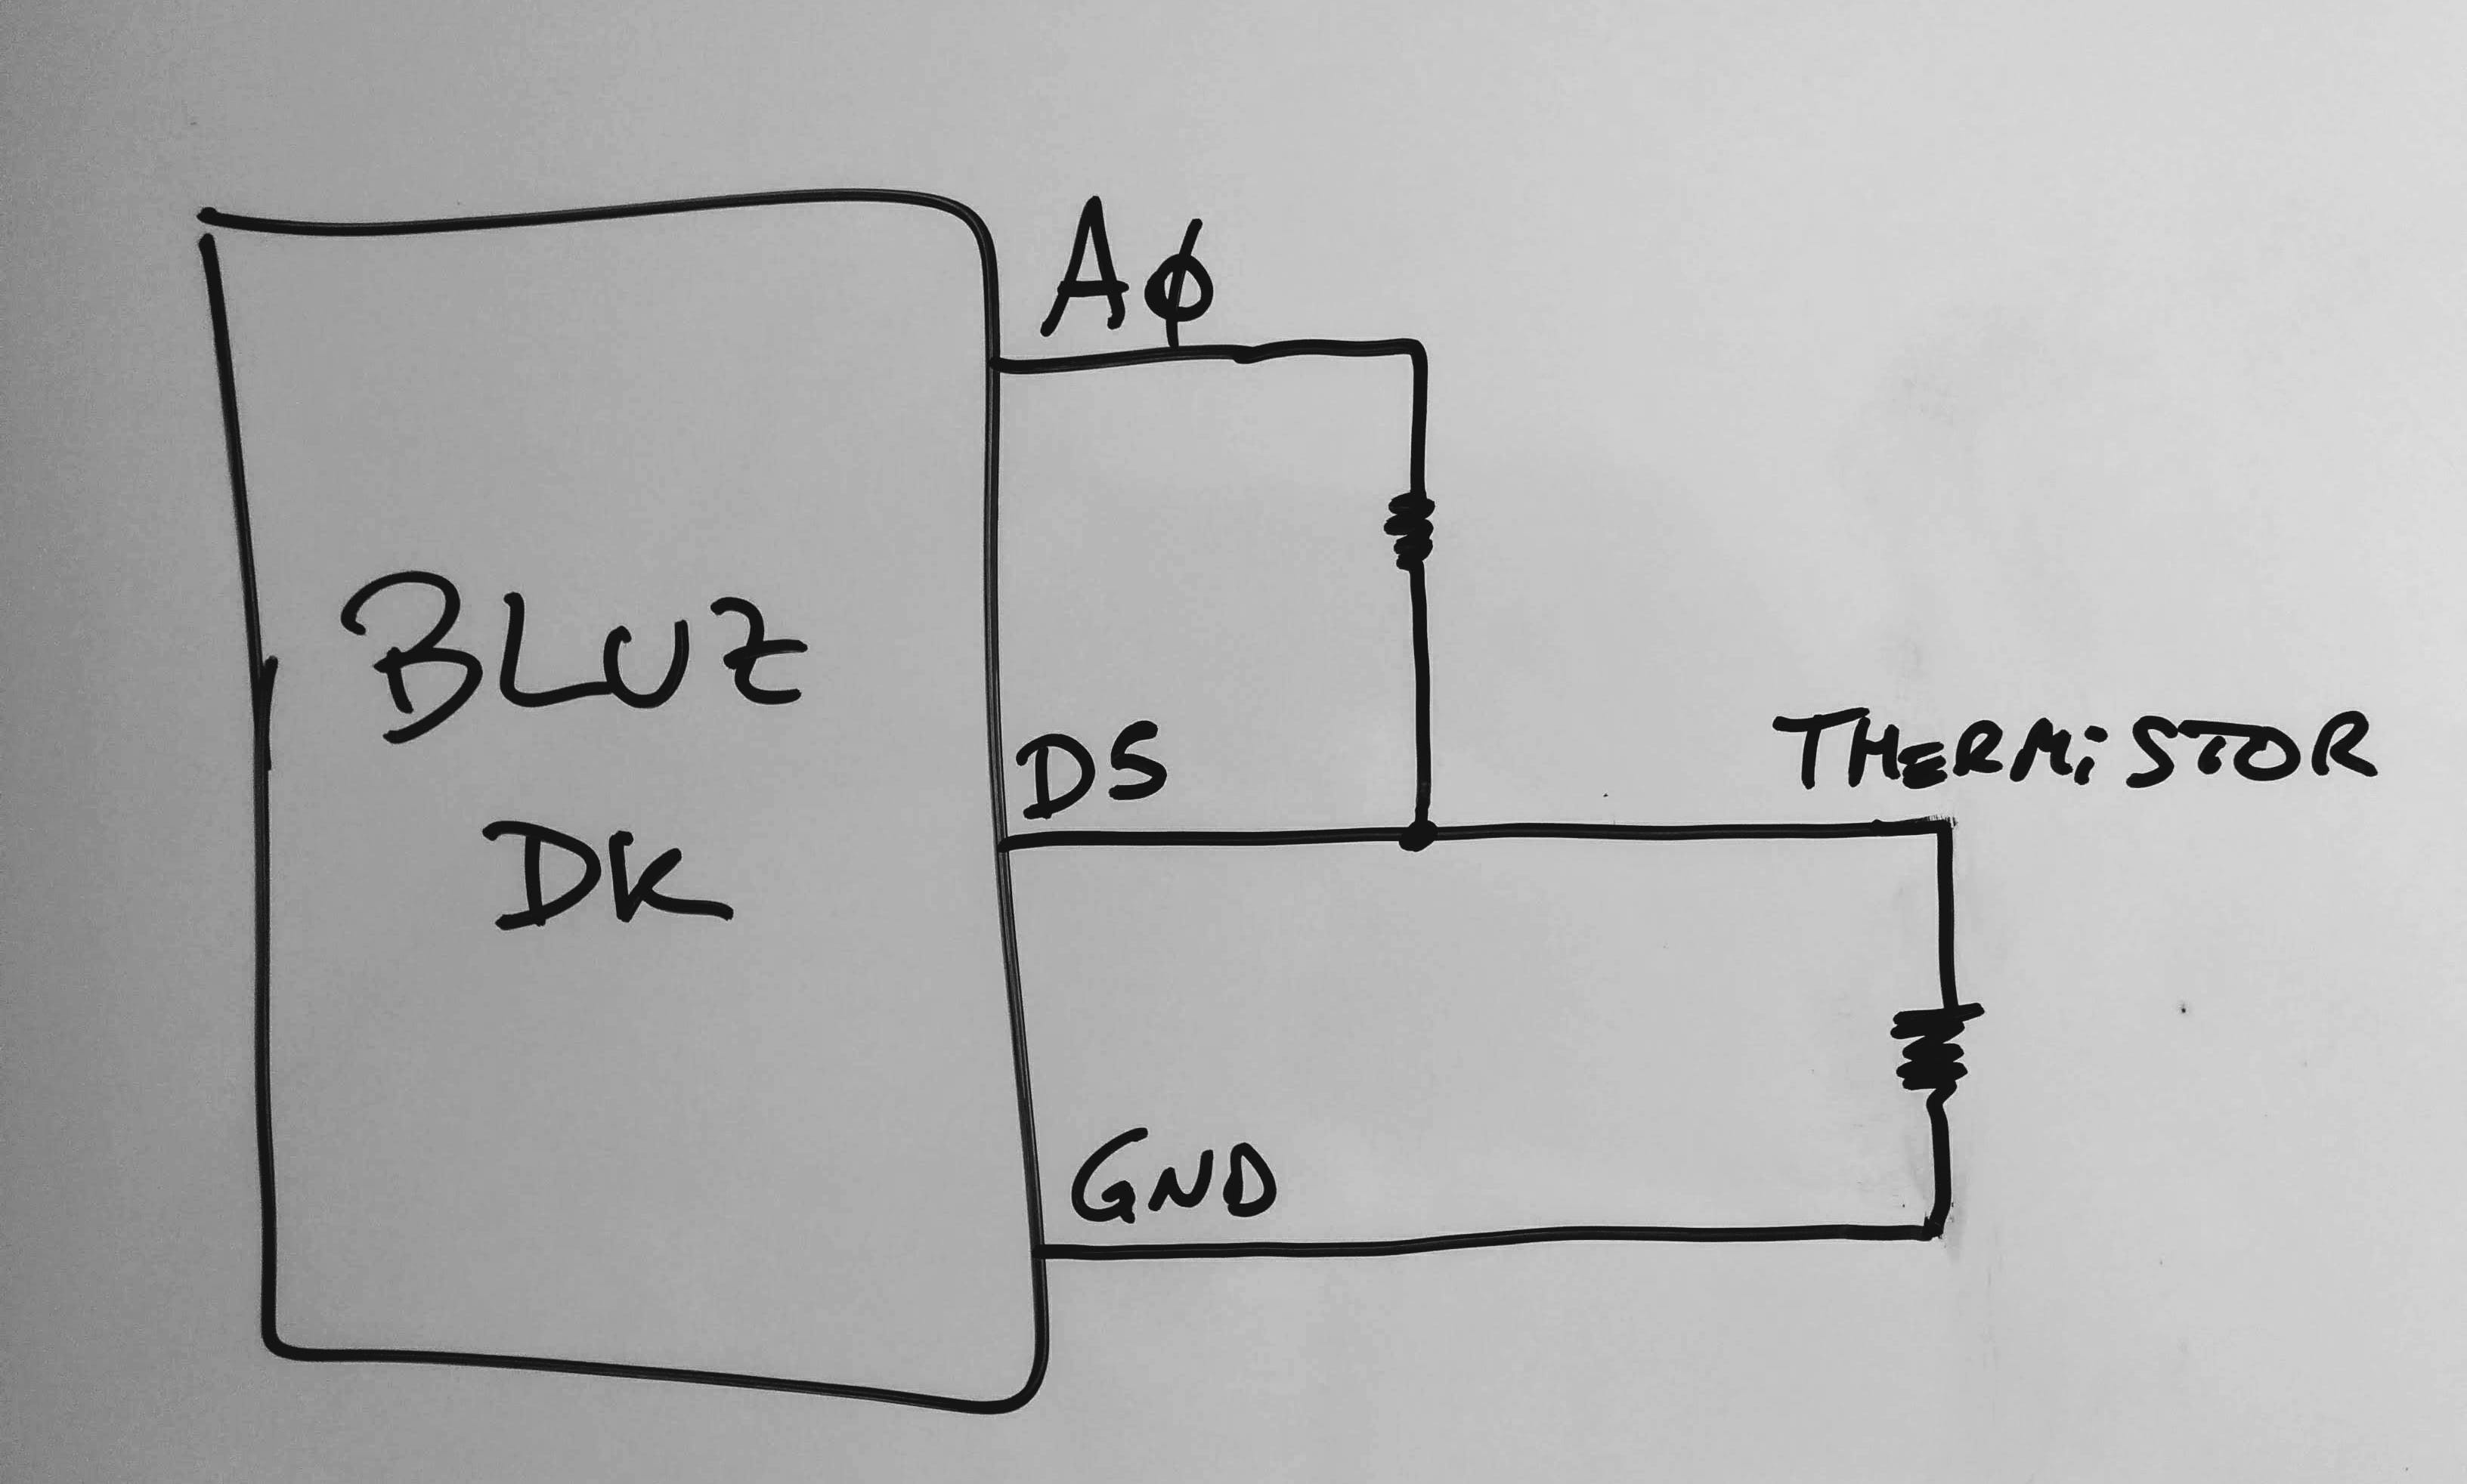 Wiring your sensor to the Bluz DK